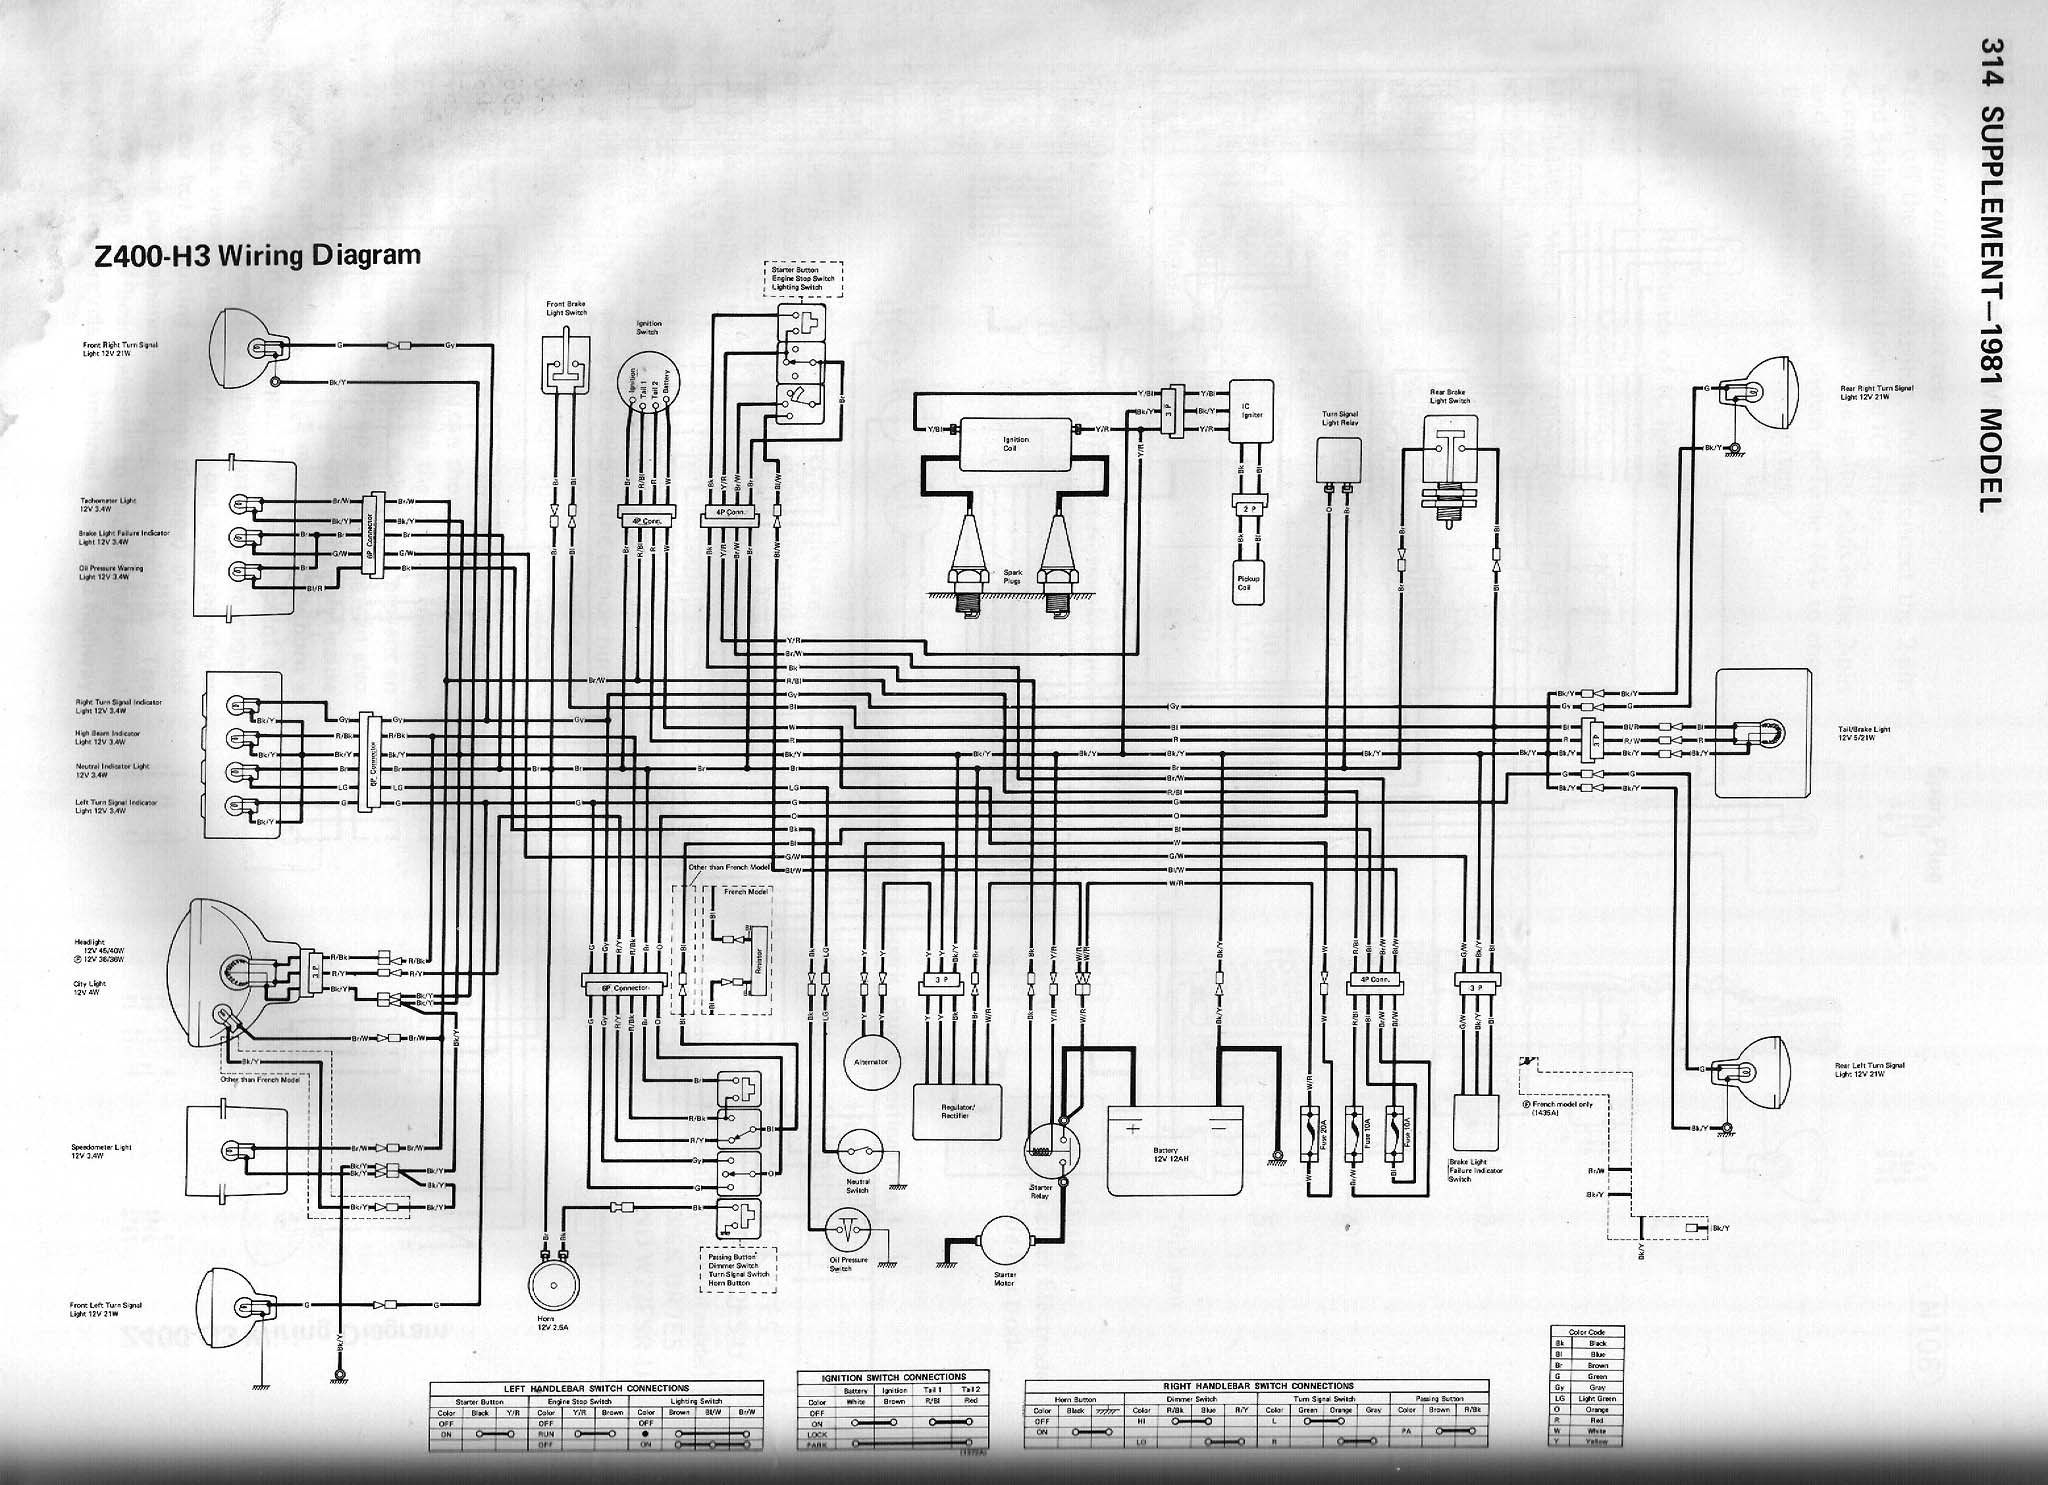 1975 Kawasaki Kz400 Wiring Diagram Great Installation Of Index Techh Tips Bilder Diagrams Rh Com Cafe Racer 1973